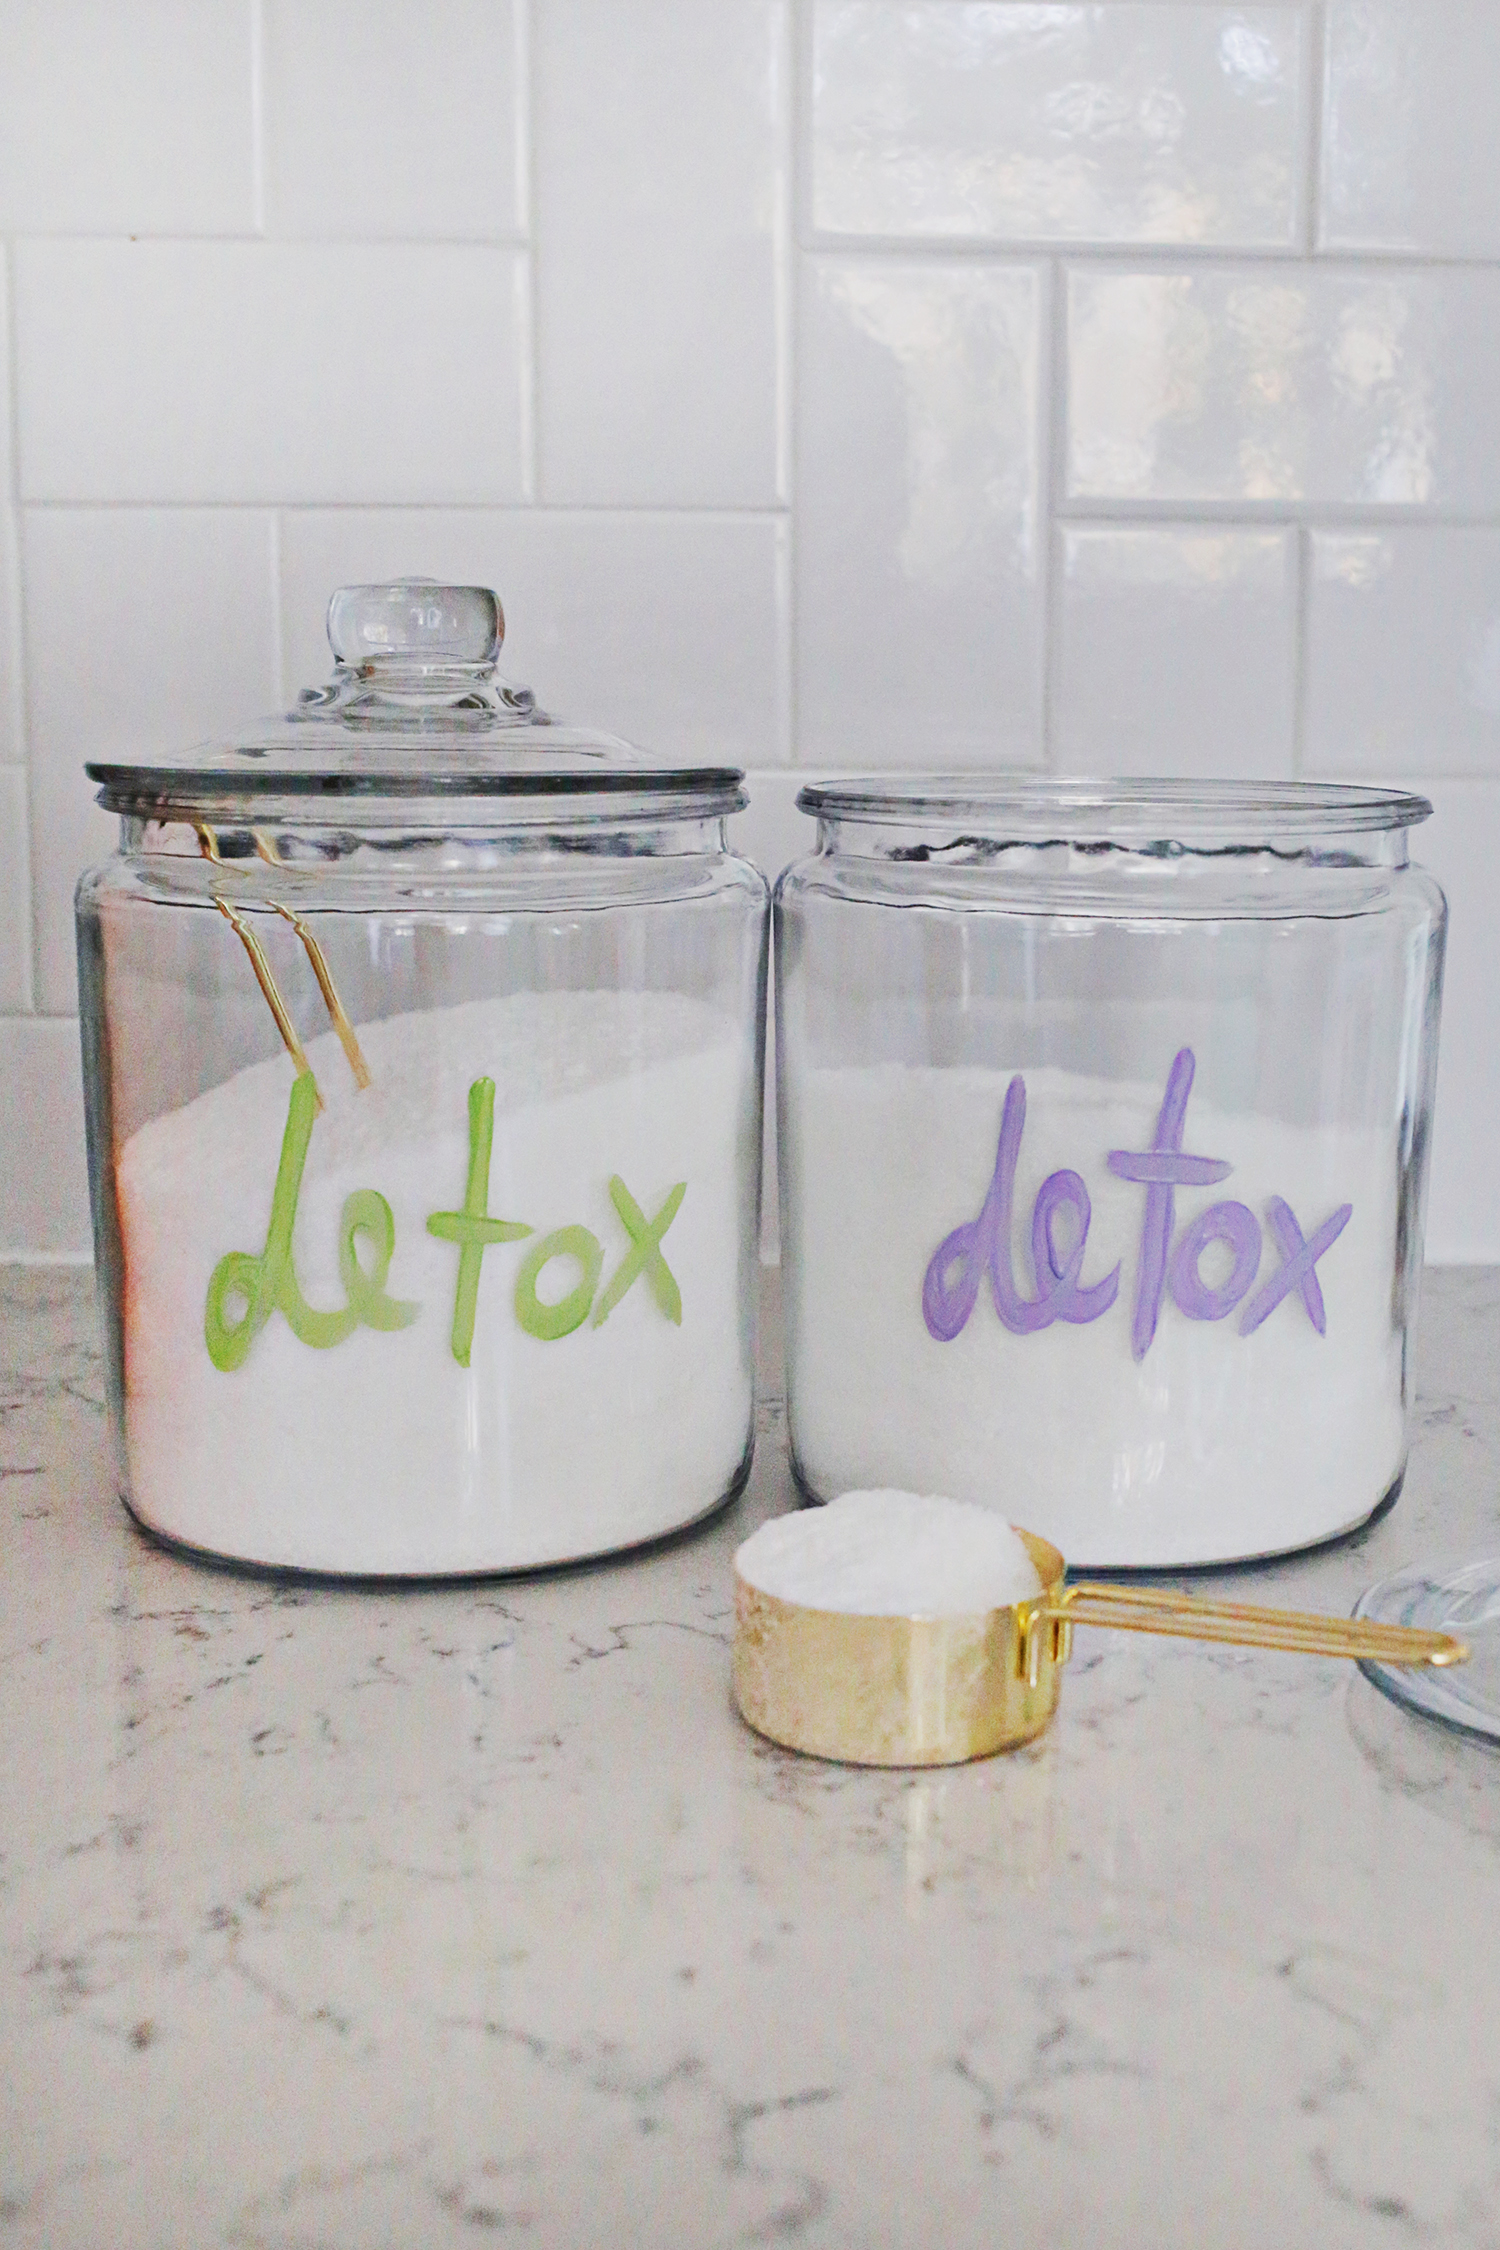 Epson Salt Detox Bath Salts (via A Beautiful Mess)